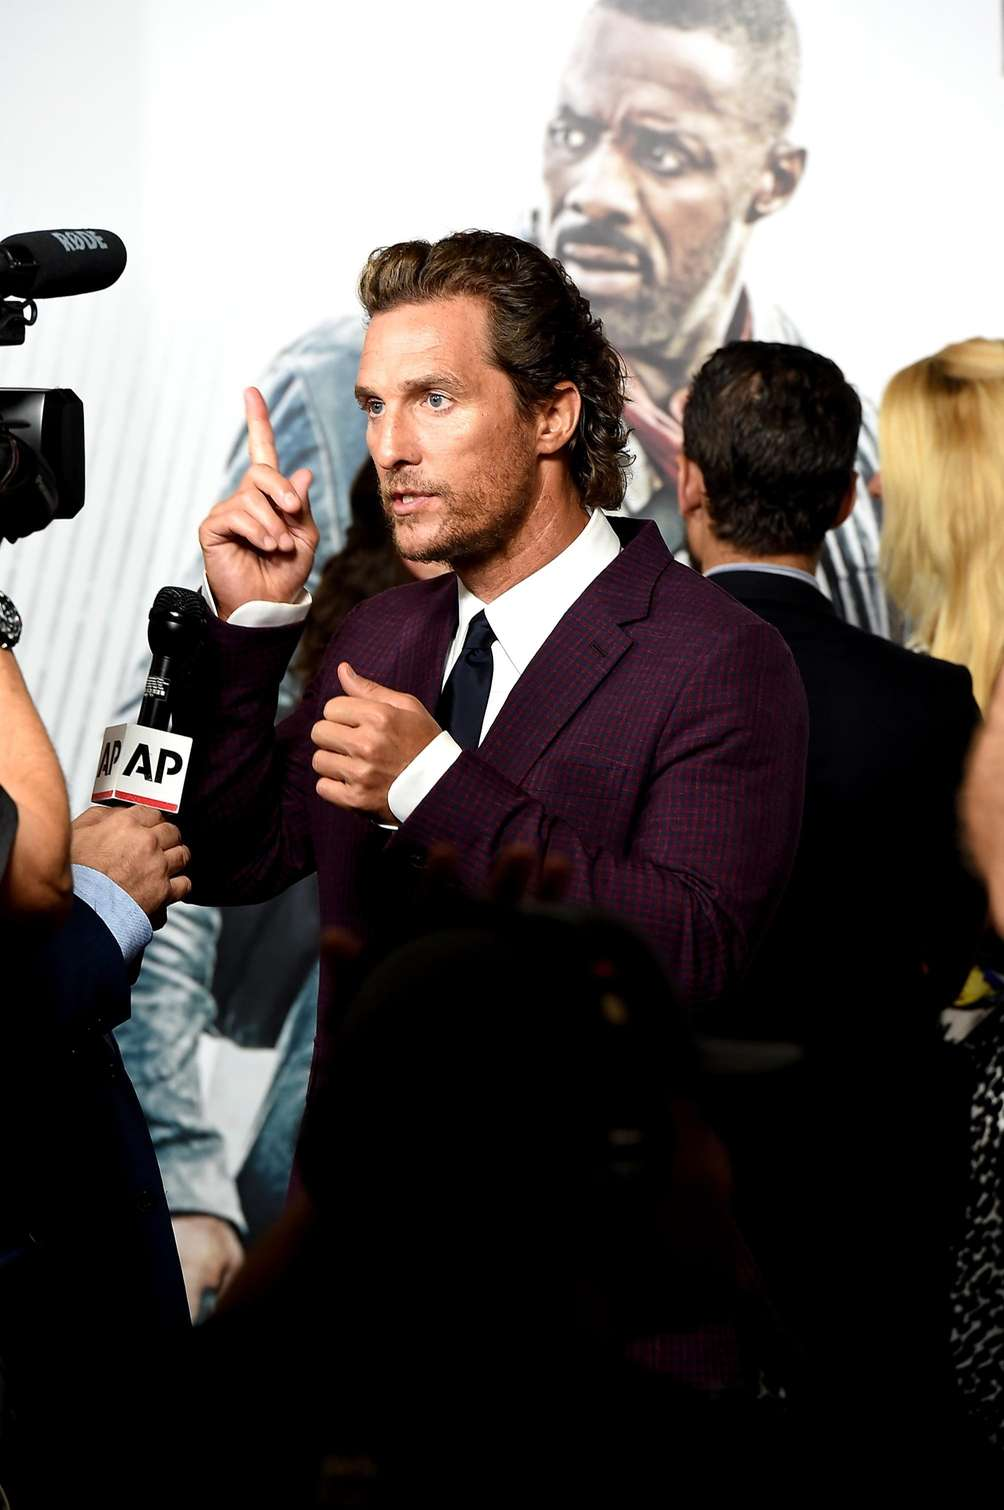 Matthew McConaughey attends the New York premiere of